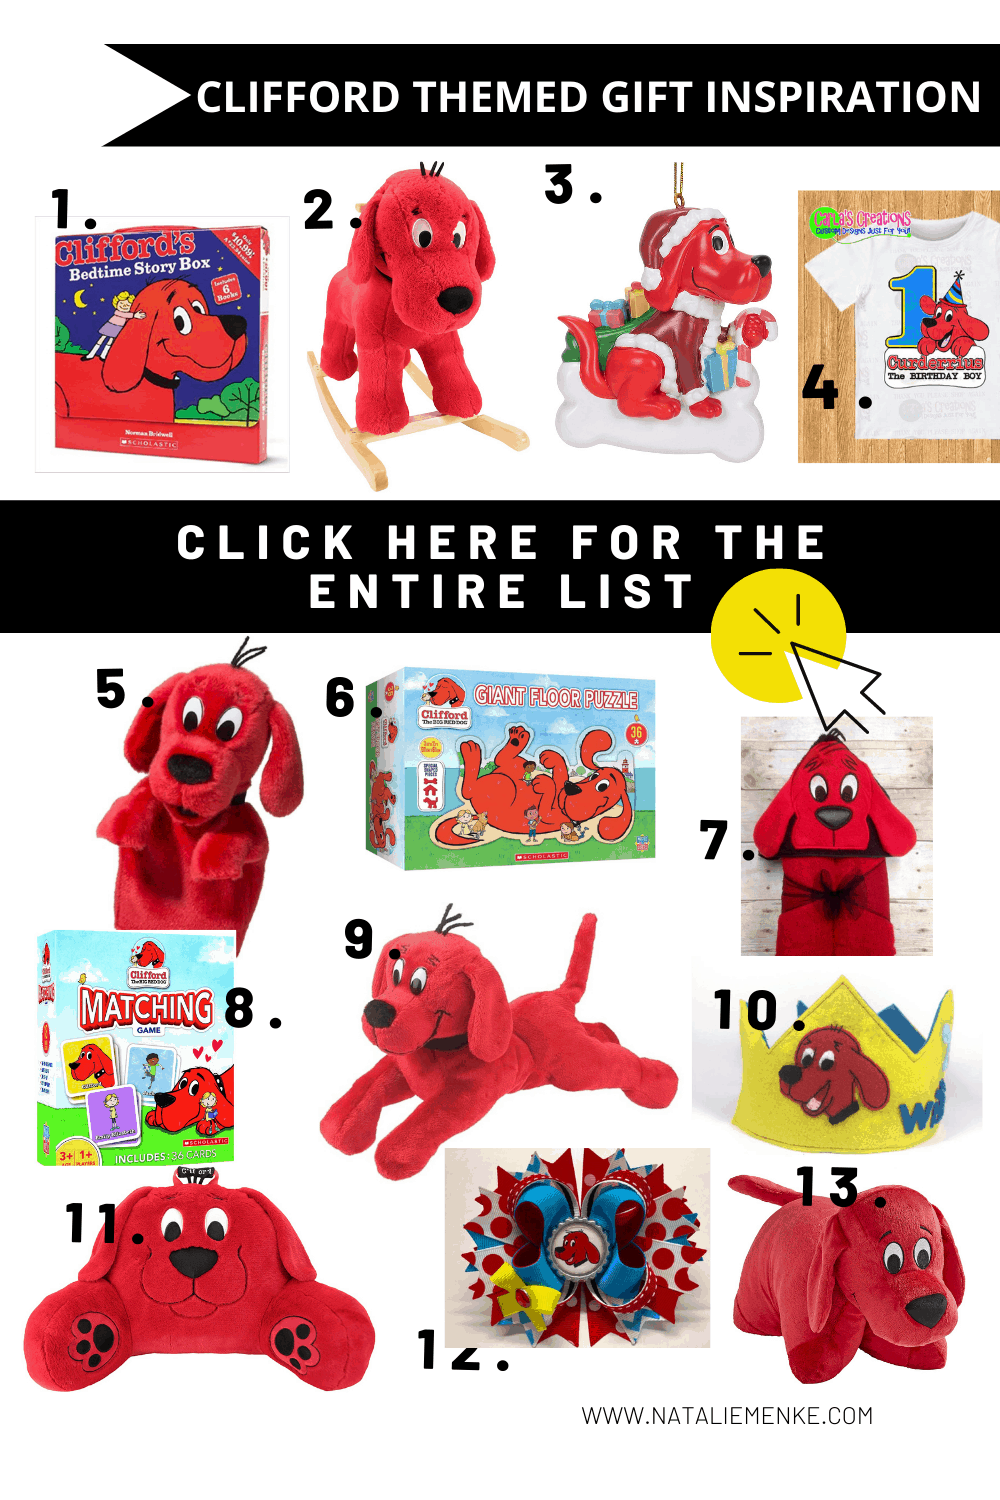 Clifford the Big Red Dog birthday gifts